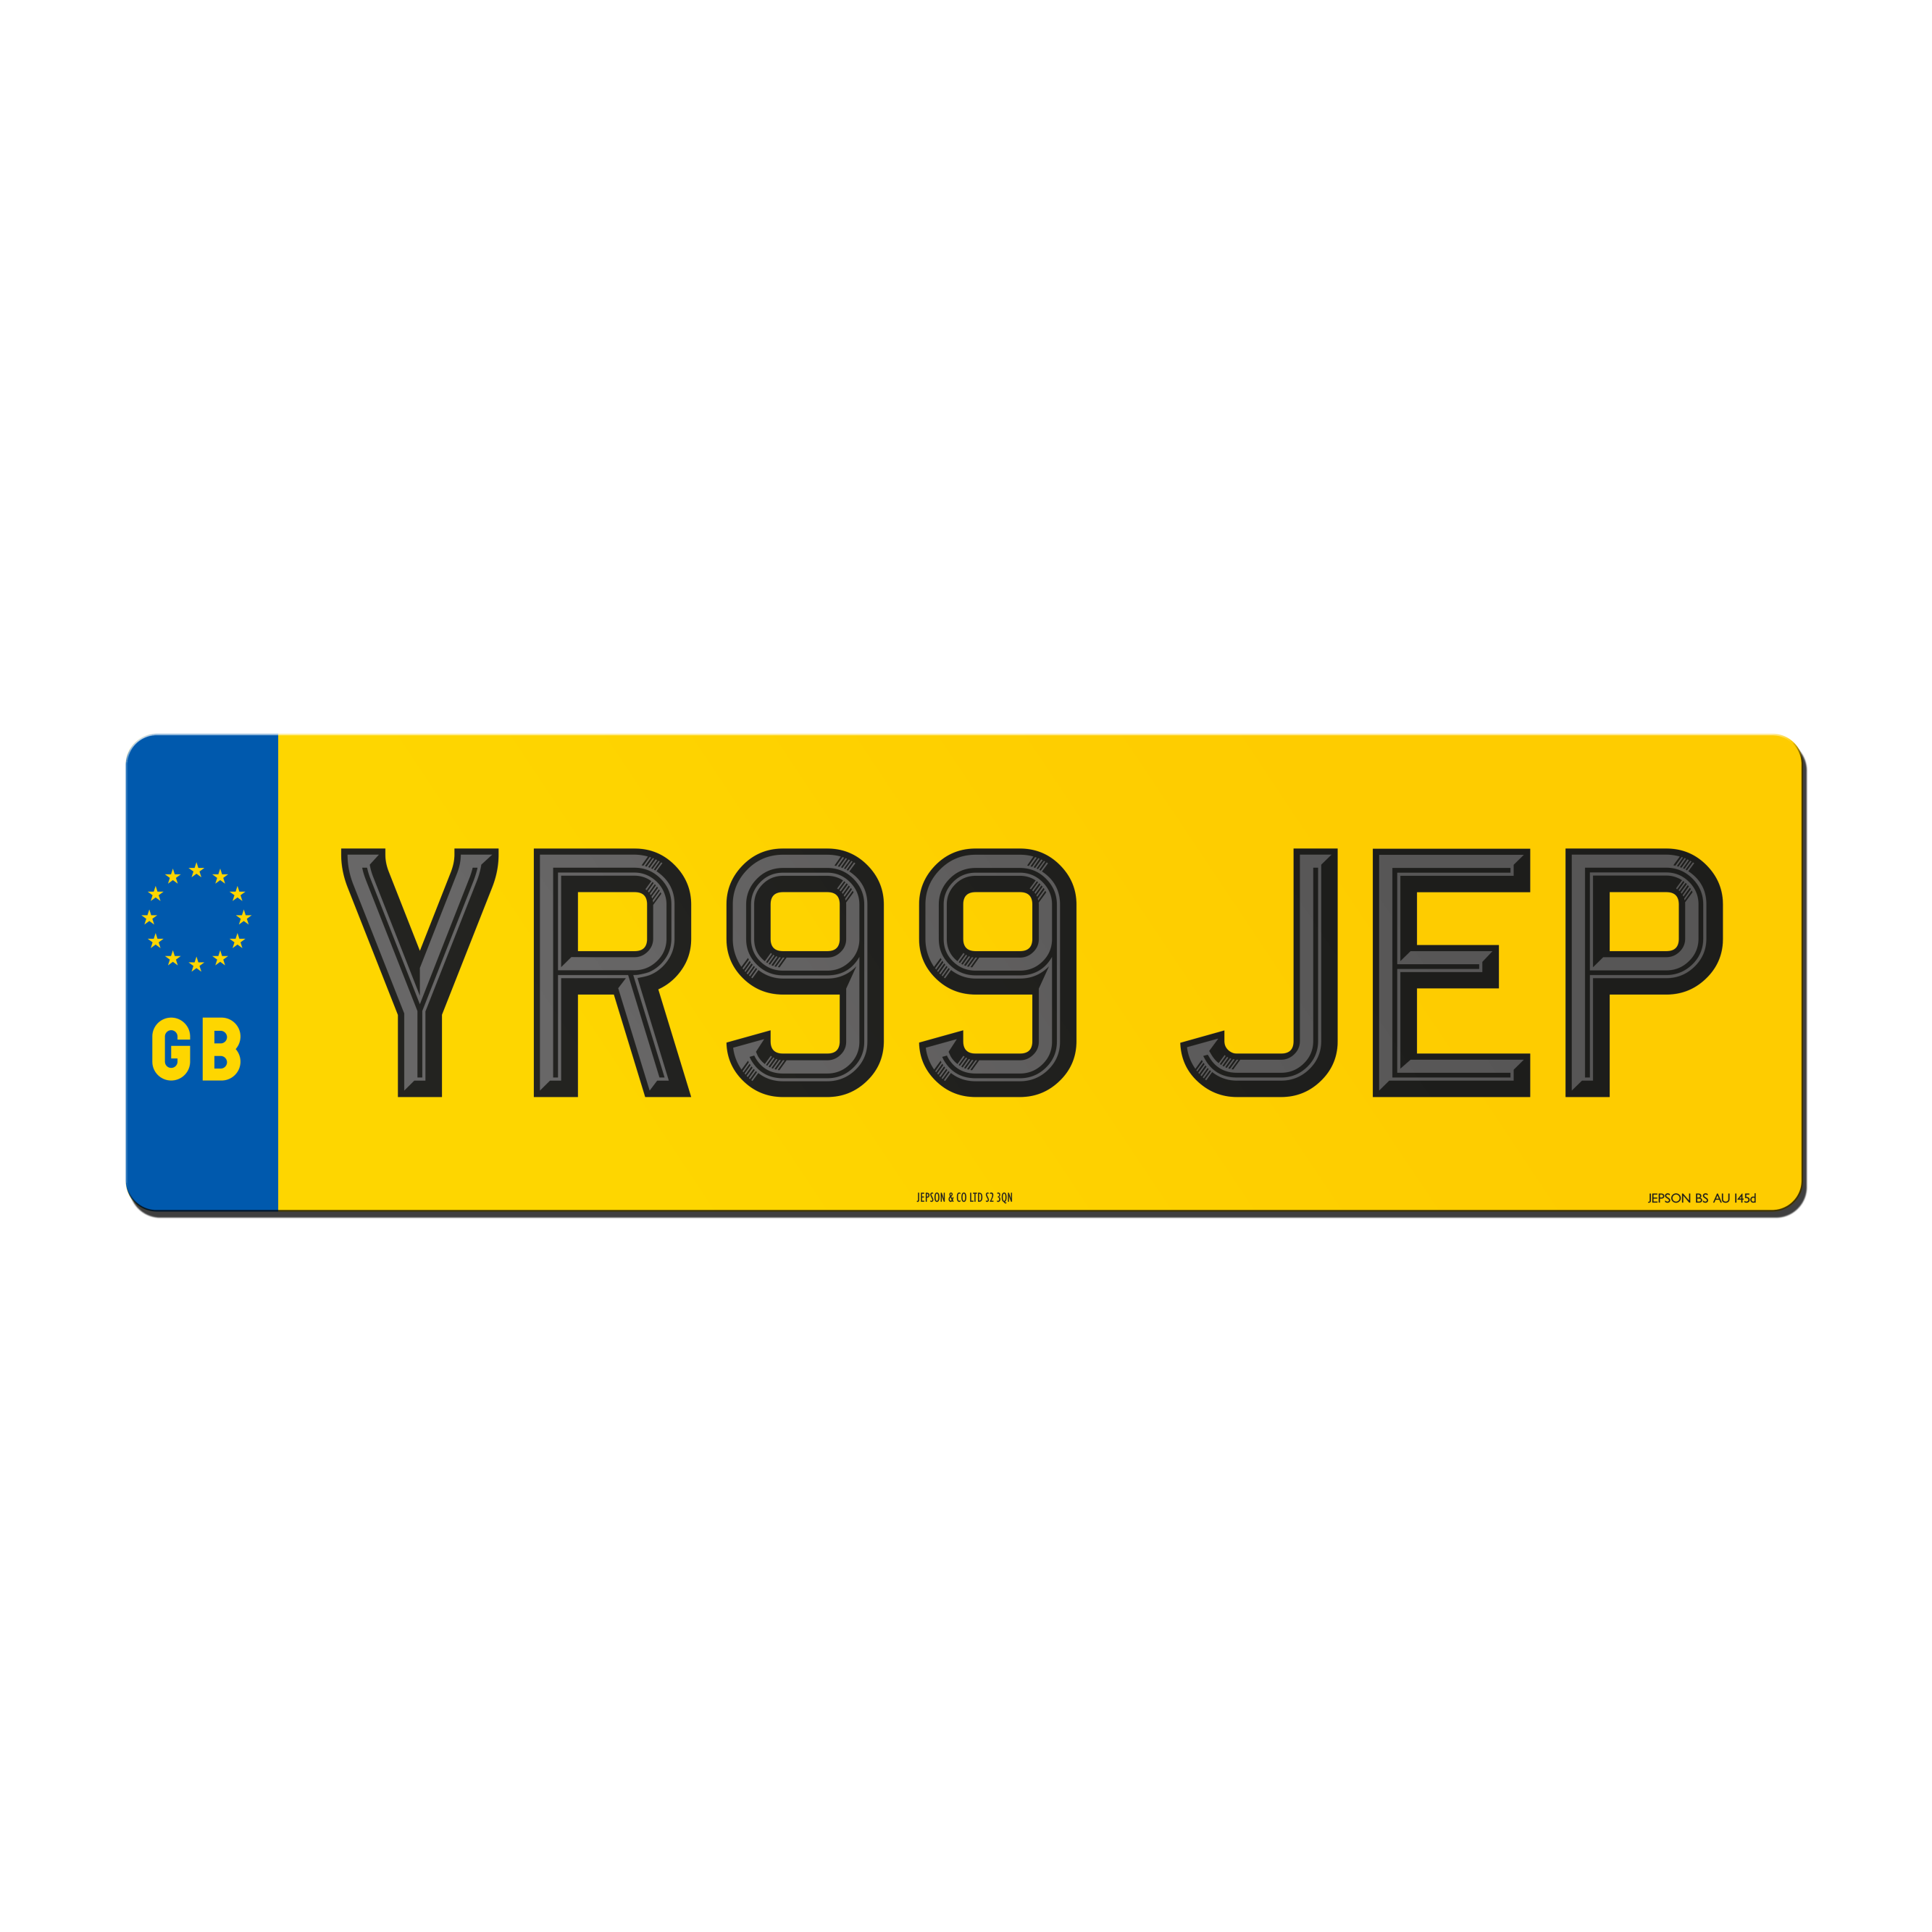 Made-Up Oversize Car Rear Plate: 520 X 152mm With Two-Tone Digits and GB flag